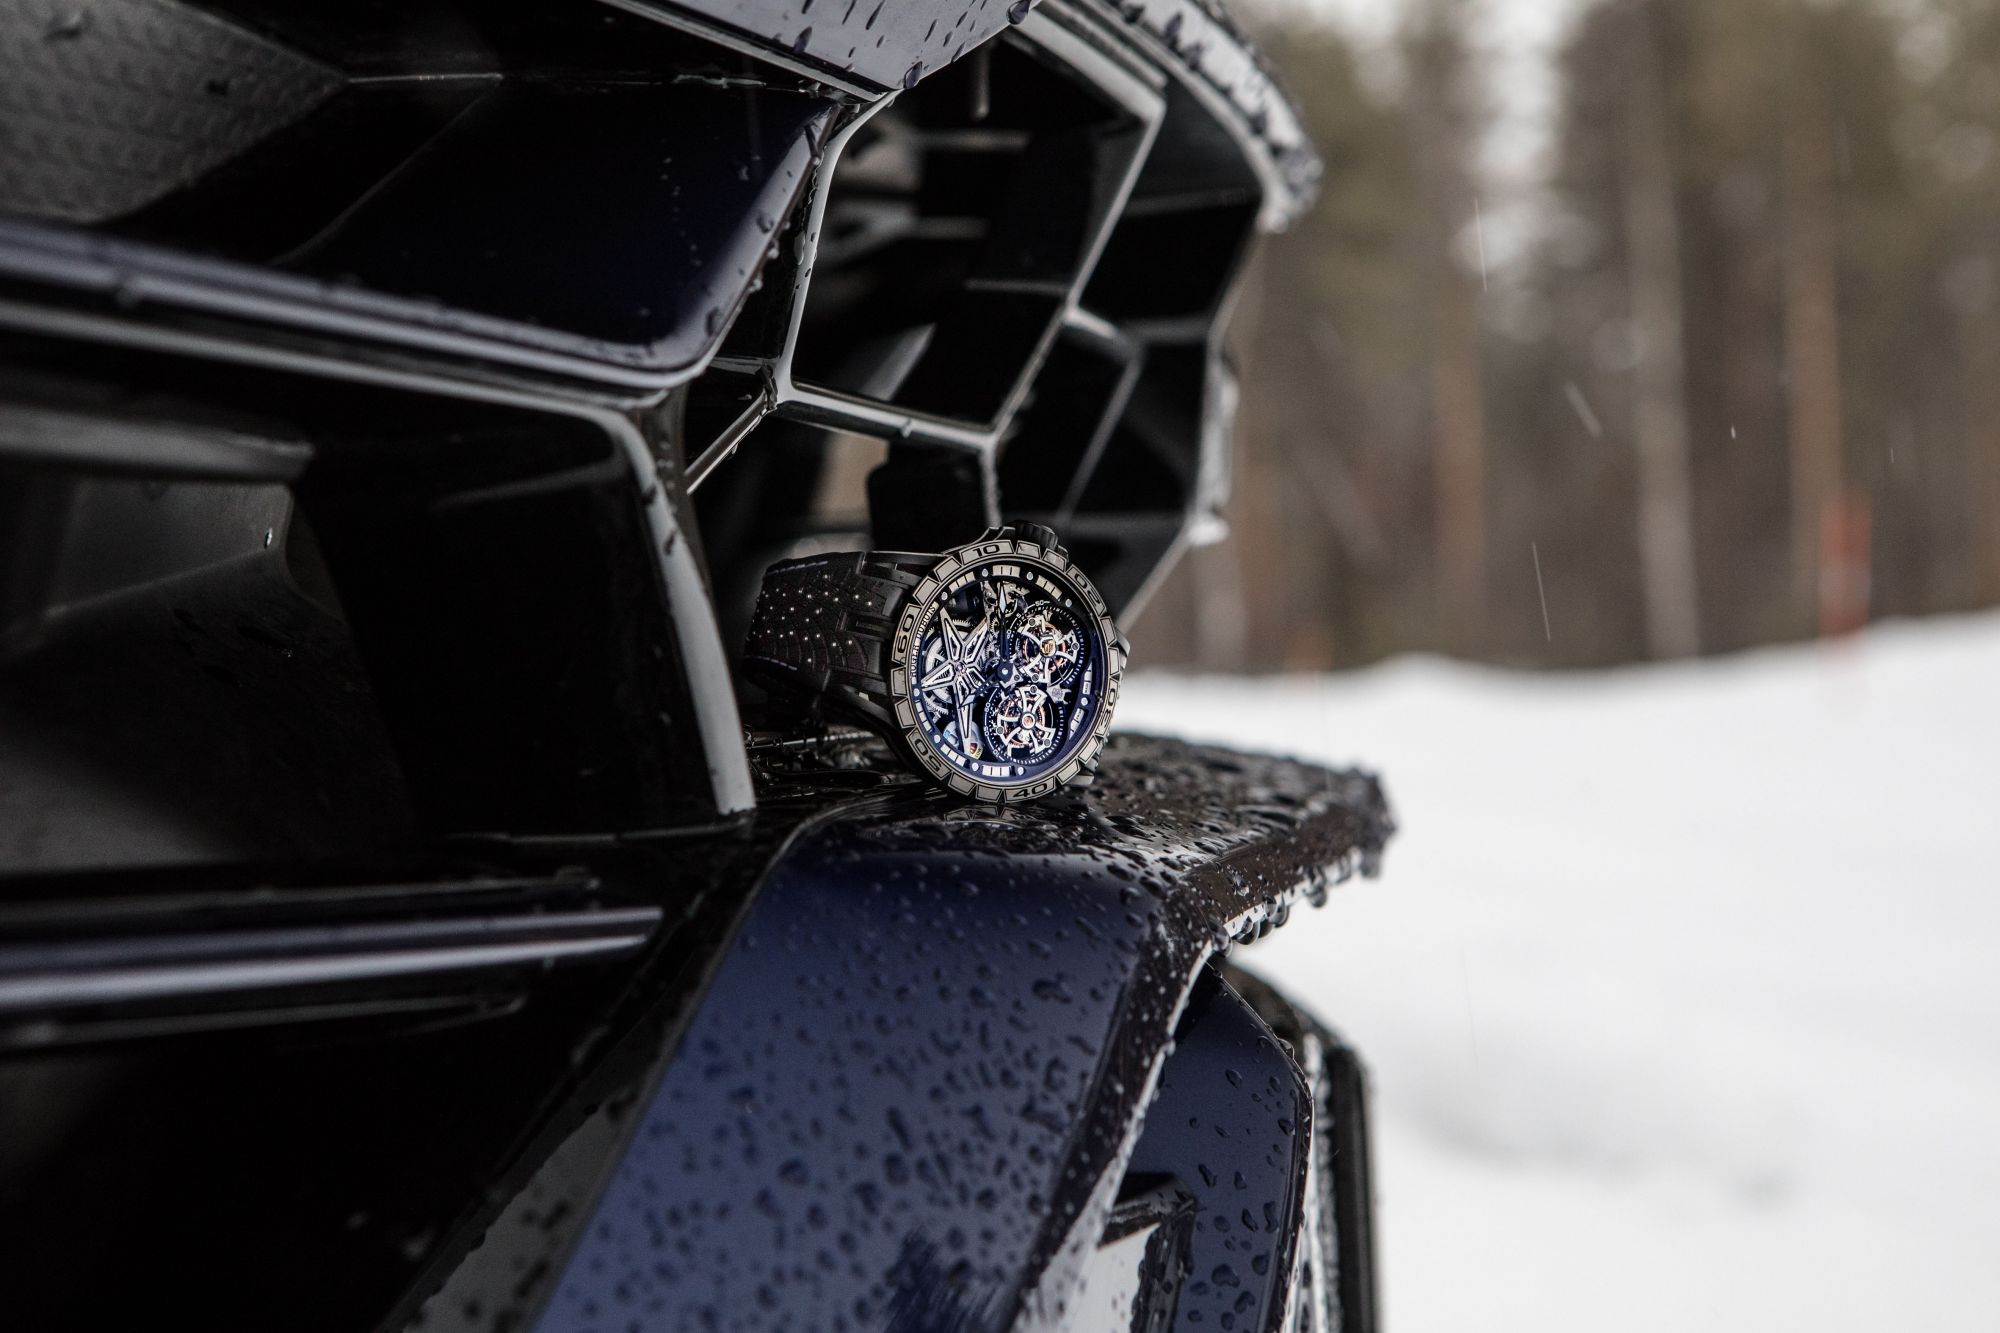 Roger Dubuis' Latest Collaboration With Pirelli Is The Coolest Yet